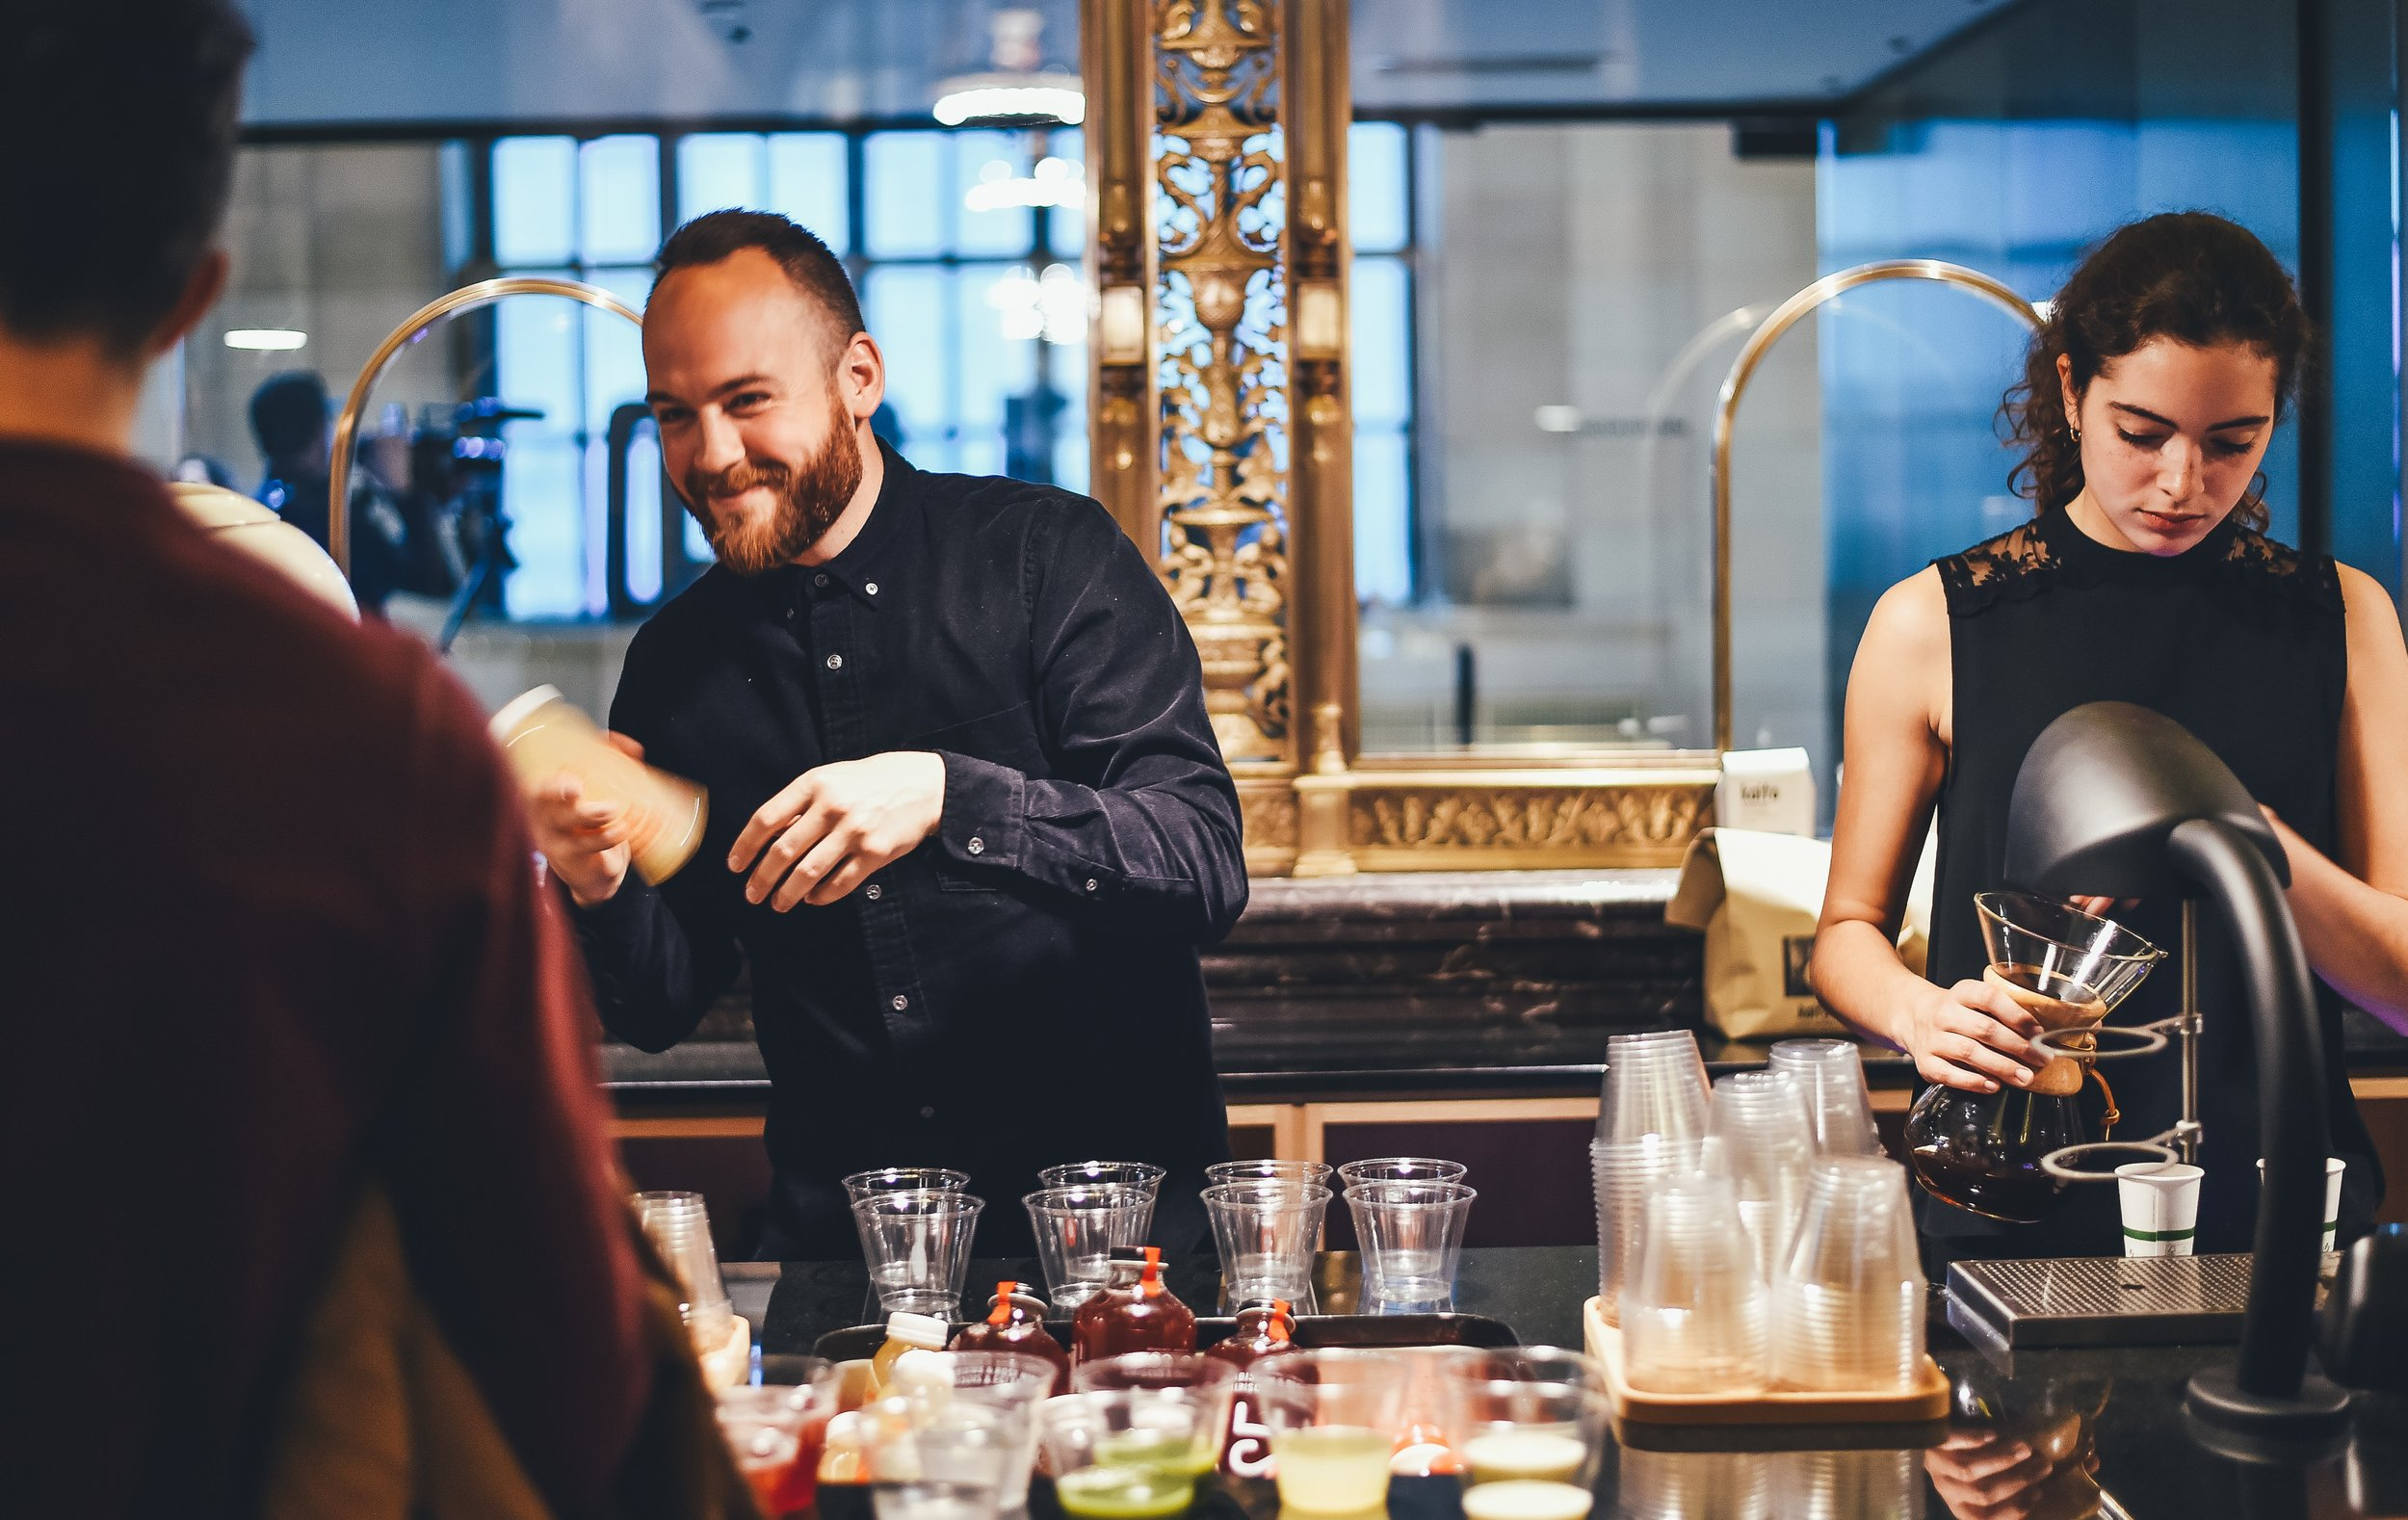 Licensed & Insured Bartenders - - whether alcohol is purchased through CHRG or supplied by client, CHRG can supply bartenders. Corking Fees apply for alcohol supplied by client, served by CHRG bartender.